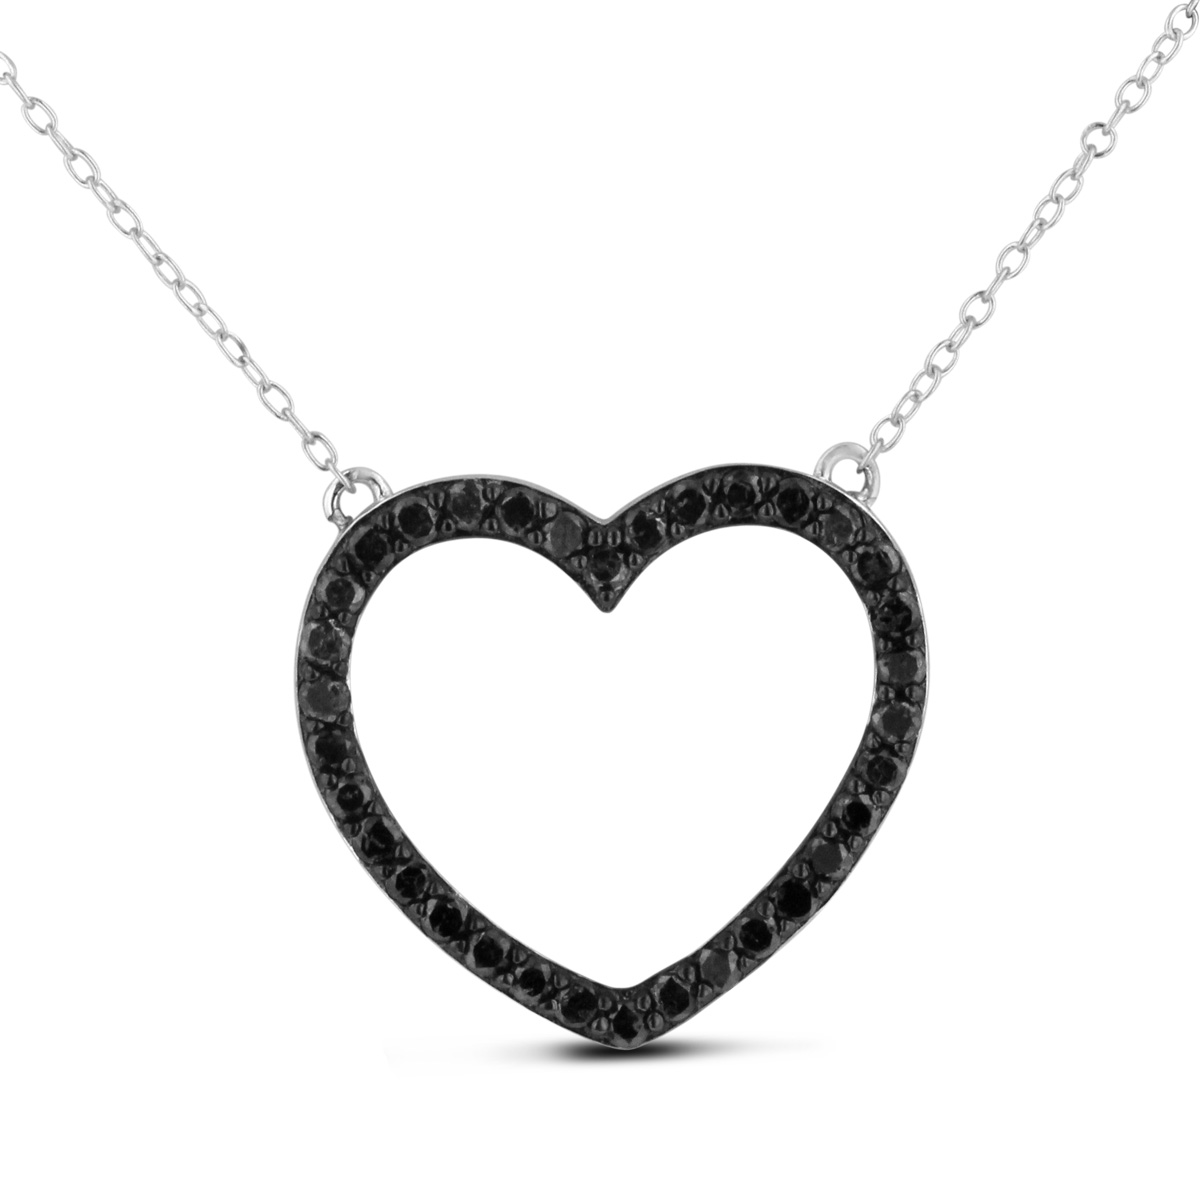 1ct Black Diamond Heart Necklace Crafted In Solid Sterling Silver, 18 Inches